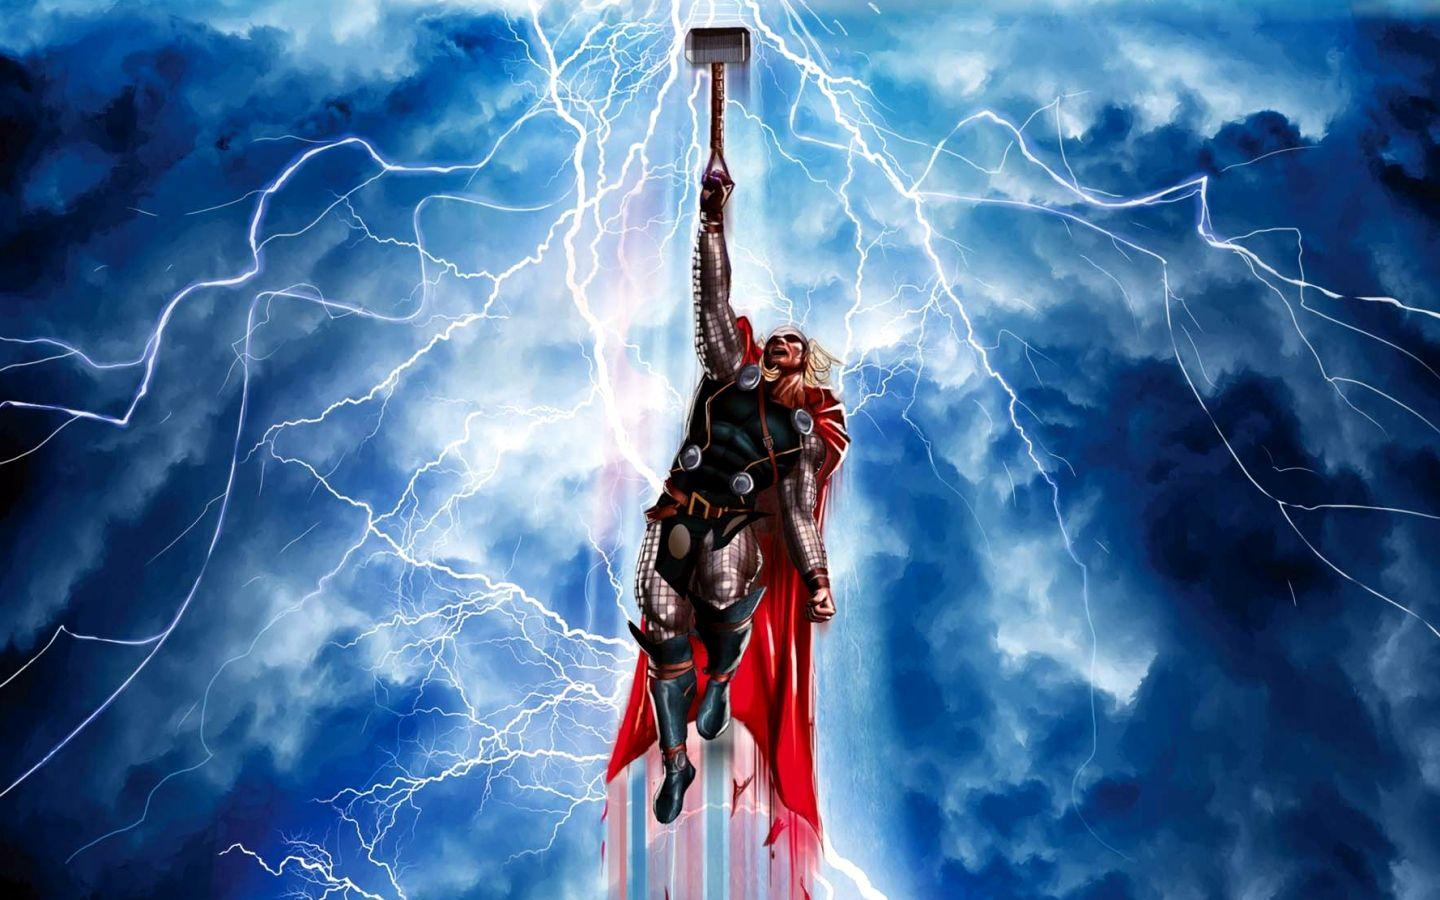 Free Download Superior Wallpapers, 27 Thor Full HD Quality Wallpapers